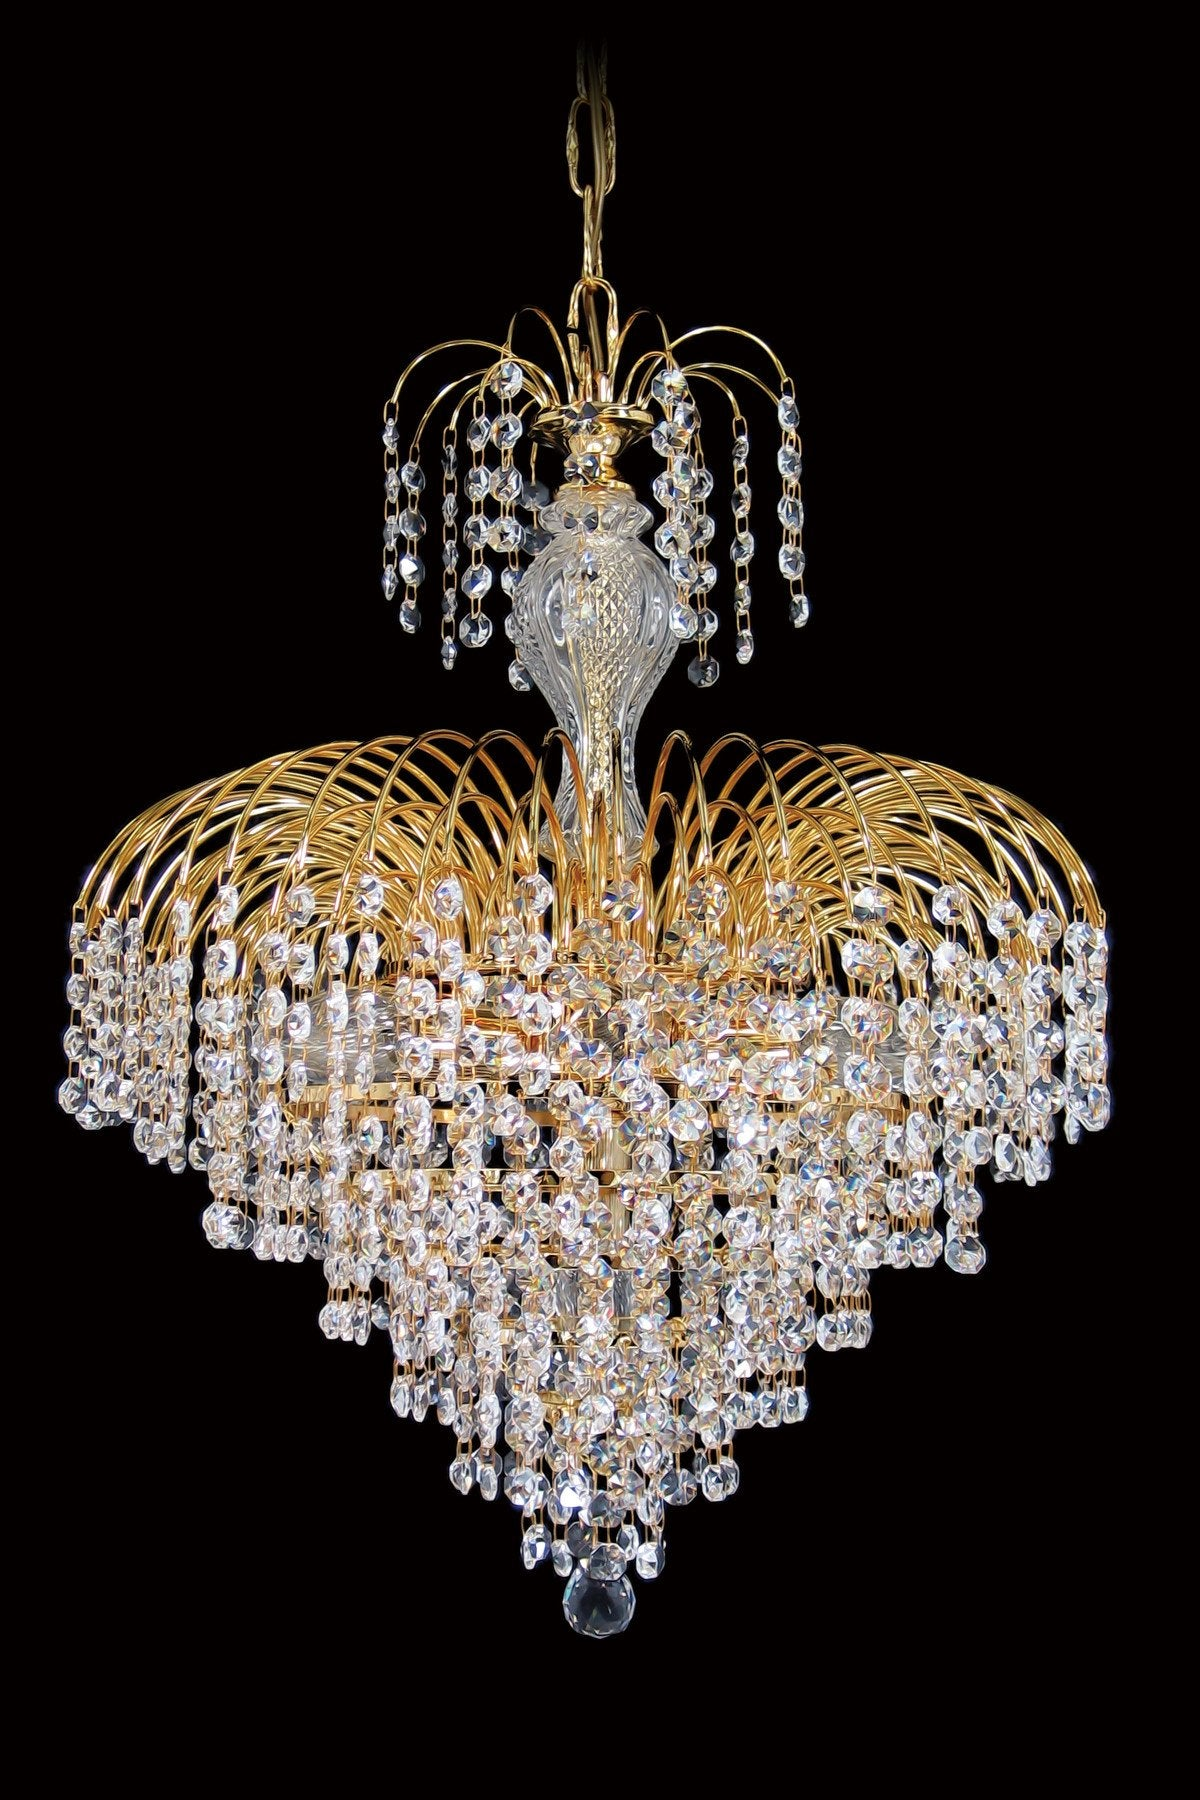 4718 crystal pendant light 19 7 lights asfour crystal 14mm bead 4718 crystal pendant light 19 7 lights asfour crystal 14mm beads chandelier 4718 19 14mm aloadofball Choice Image